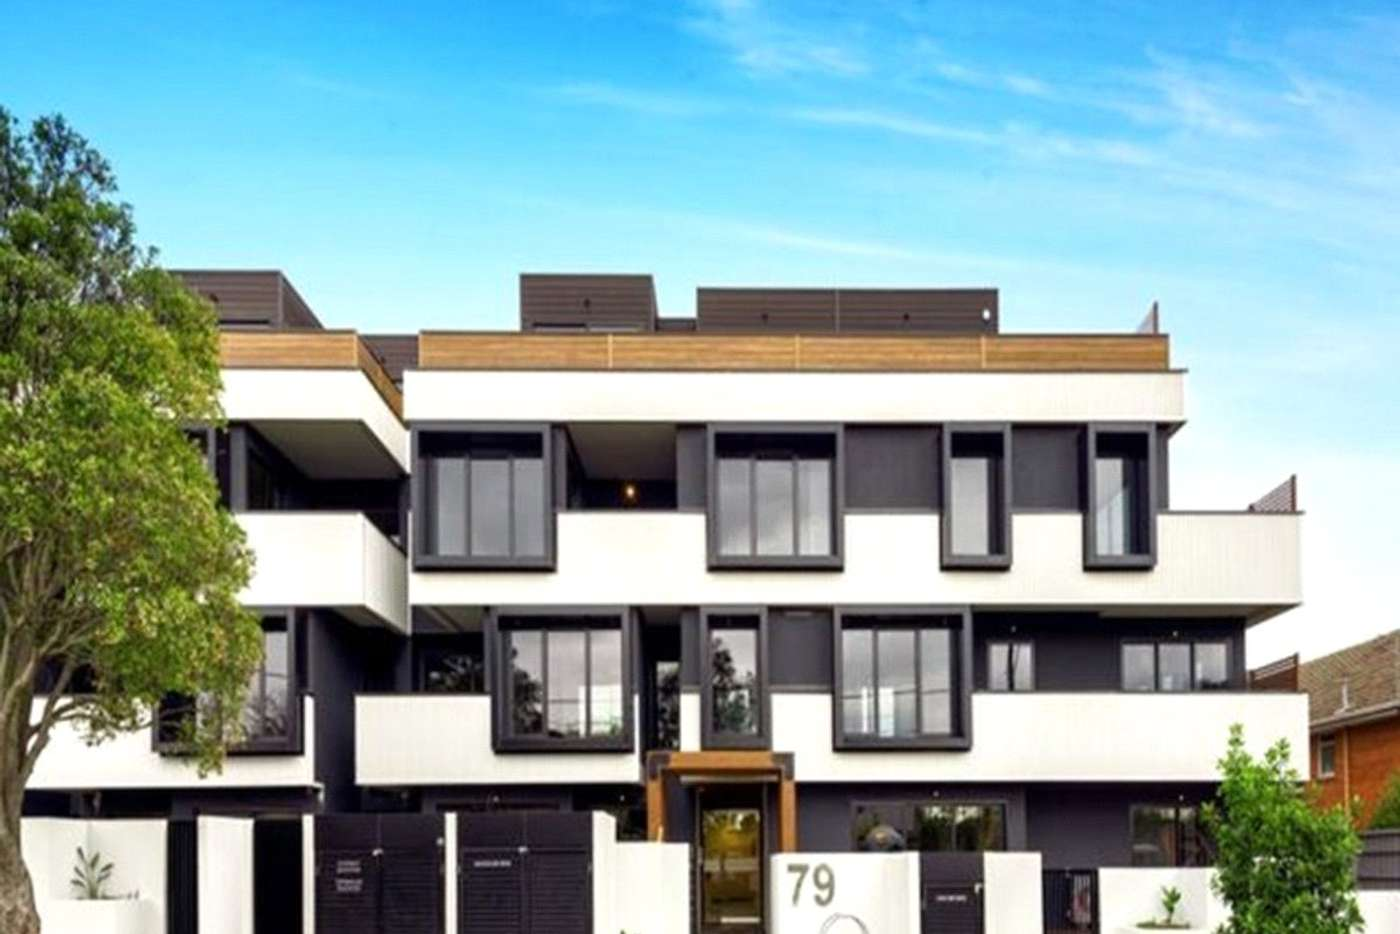 Main view of Homely apartment listing, G10/79-83 Mitchell Street, Bentleigh VIC 3204